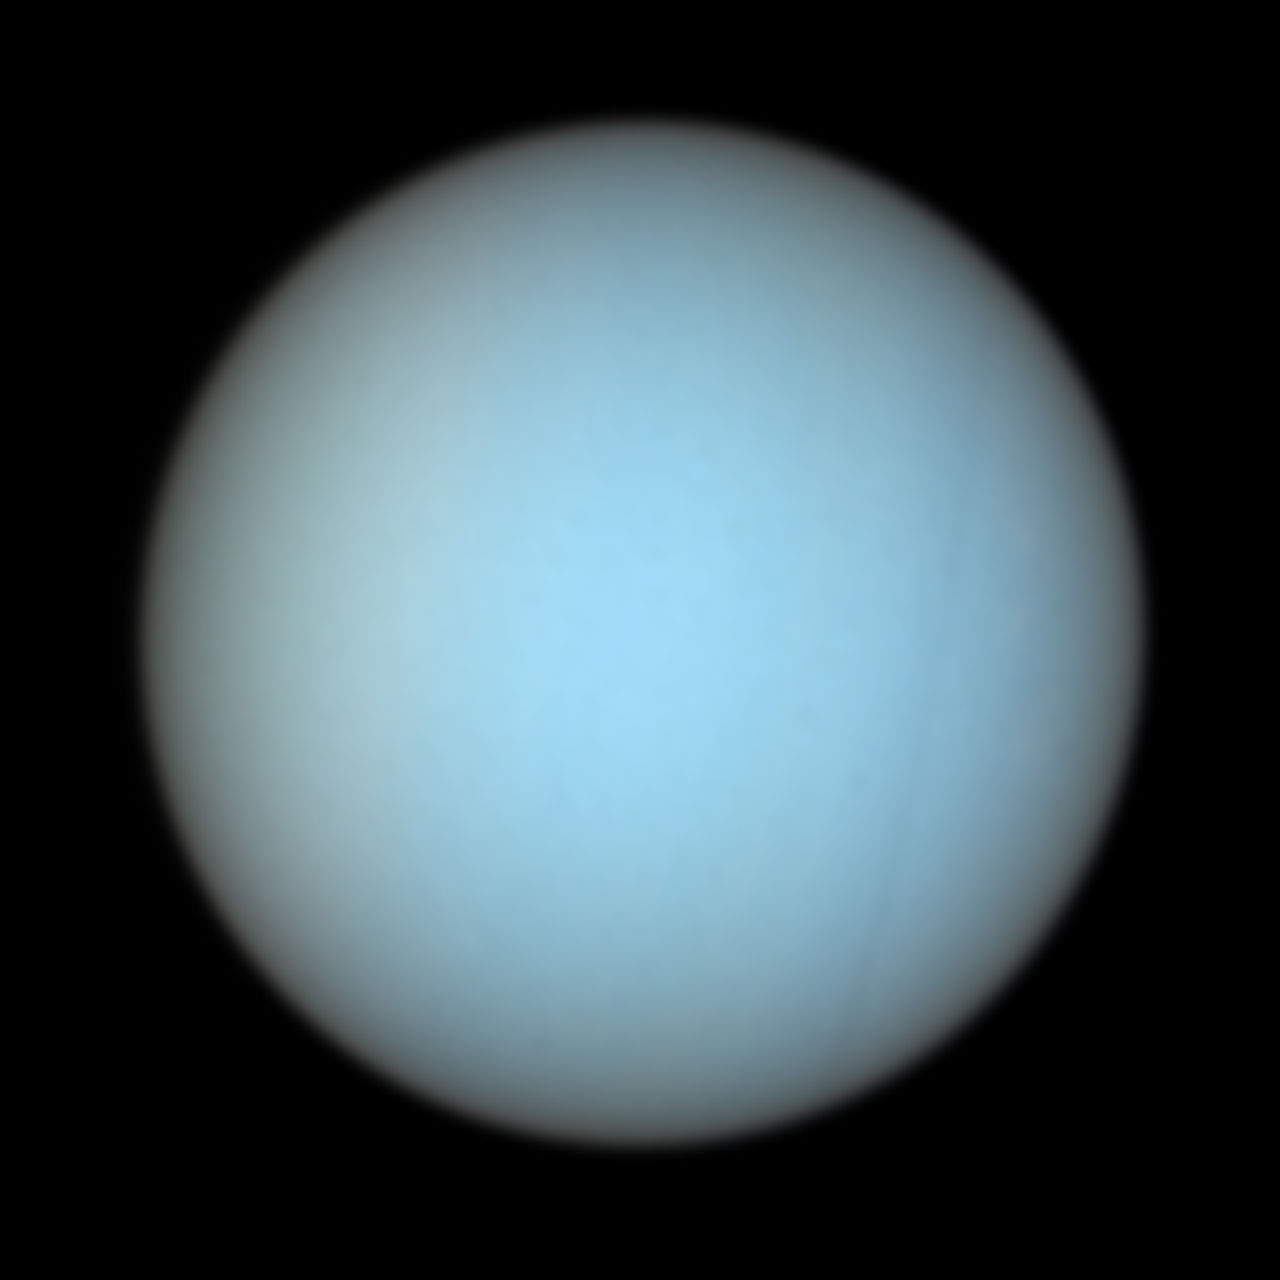 nasa photos of uranus - photo #2